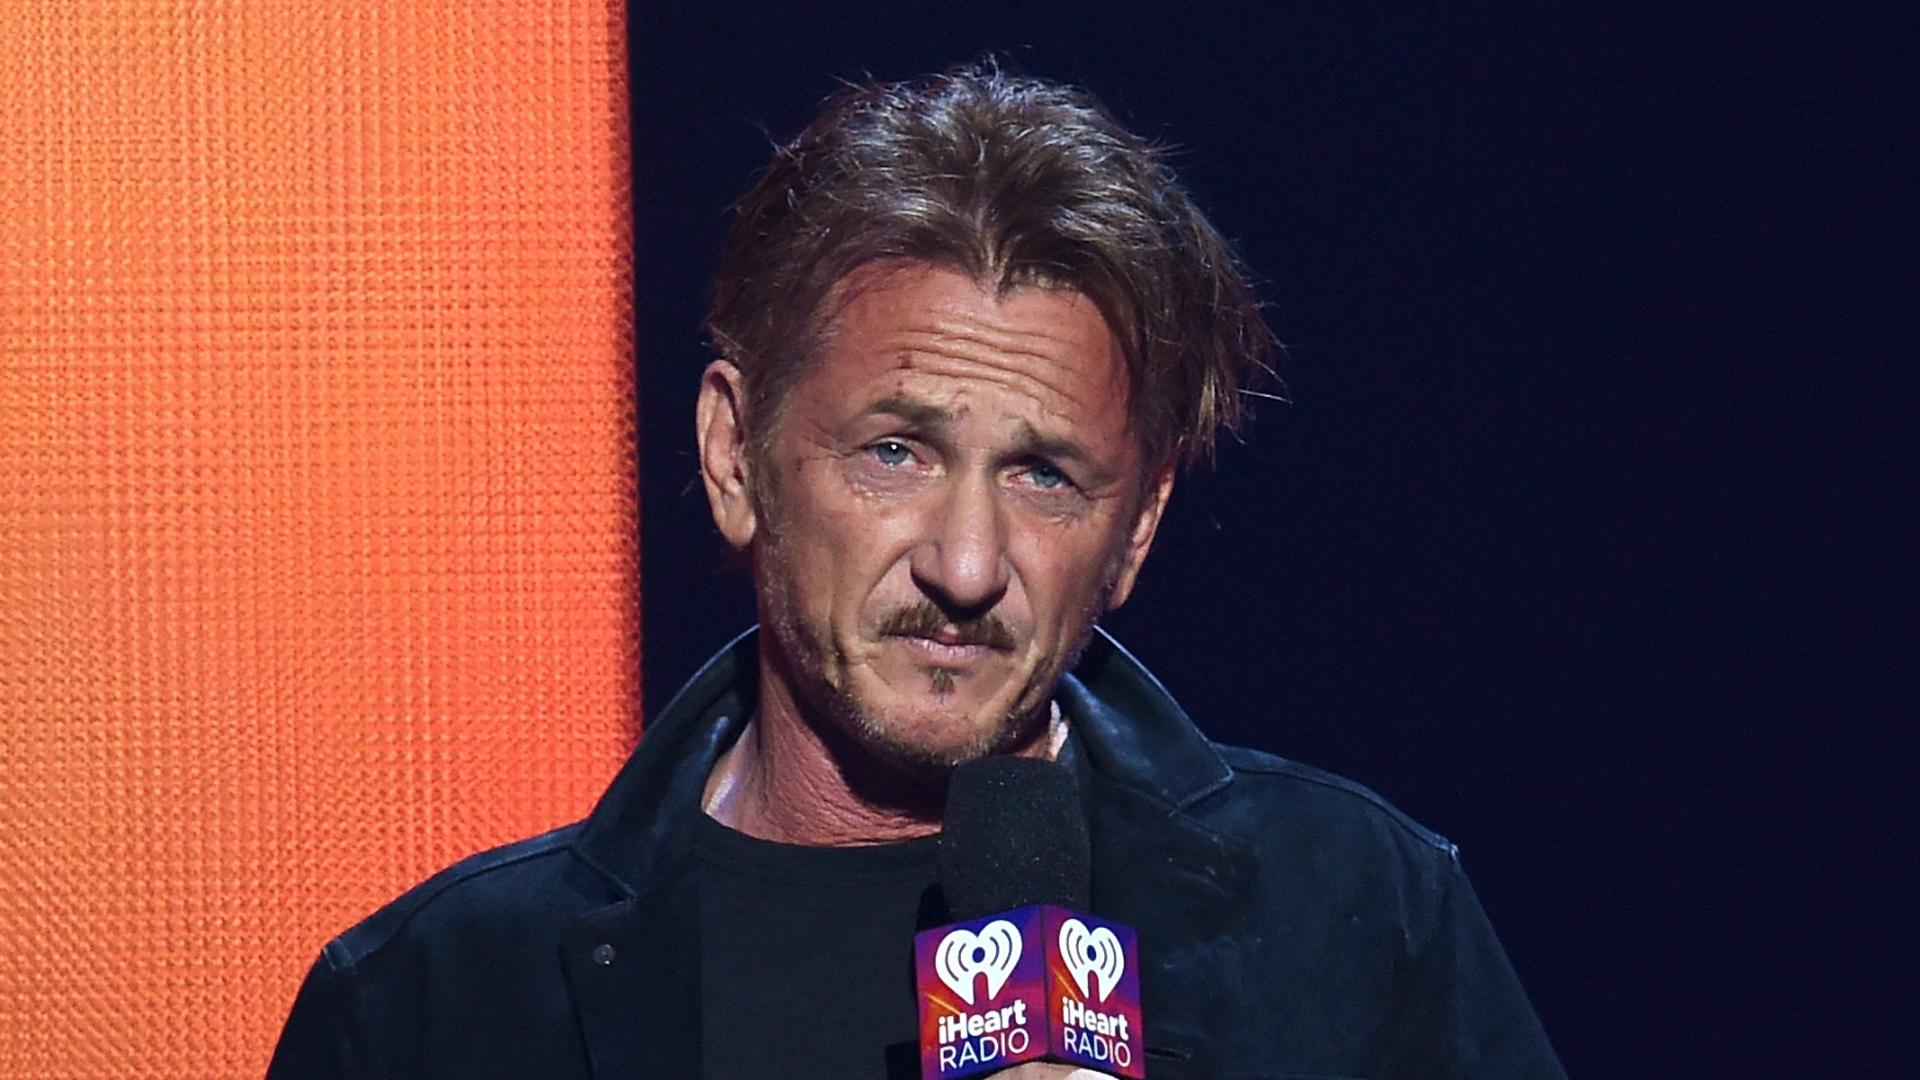 Sean Penn holding a glass and a microphone.